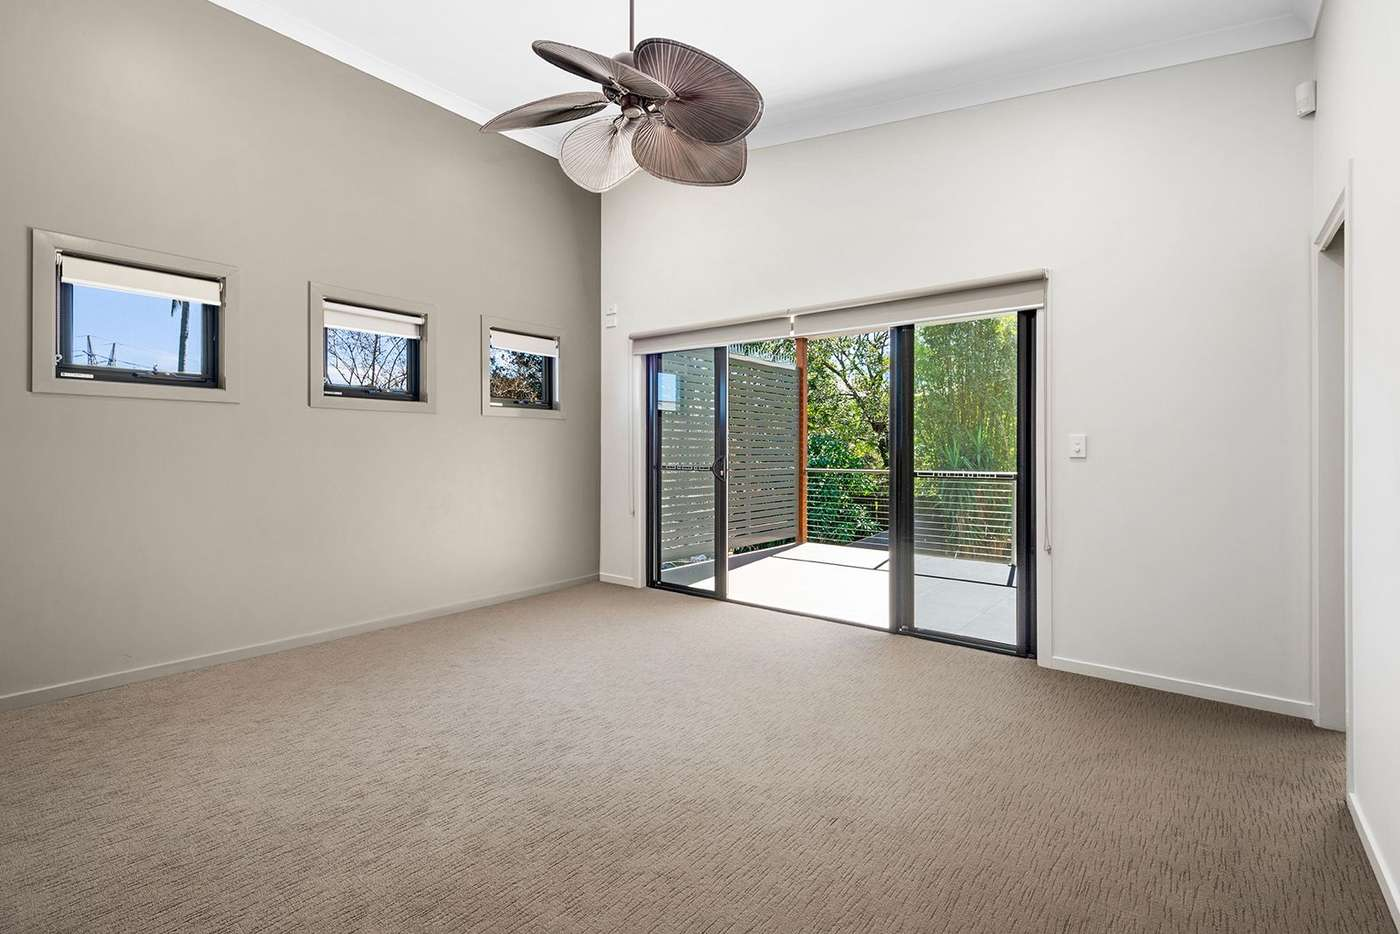 Sixth view of Homely house listing, 14 Michael Street, Bulimba QLD 4171